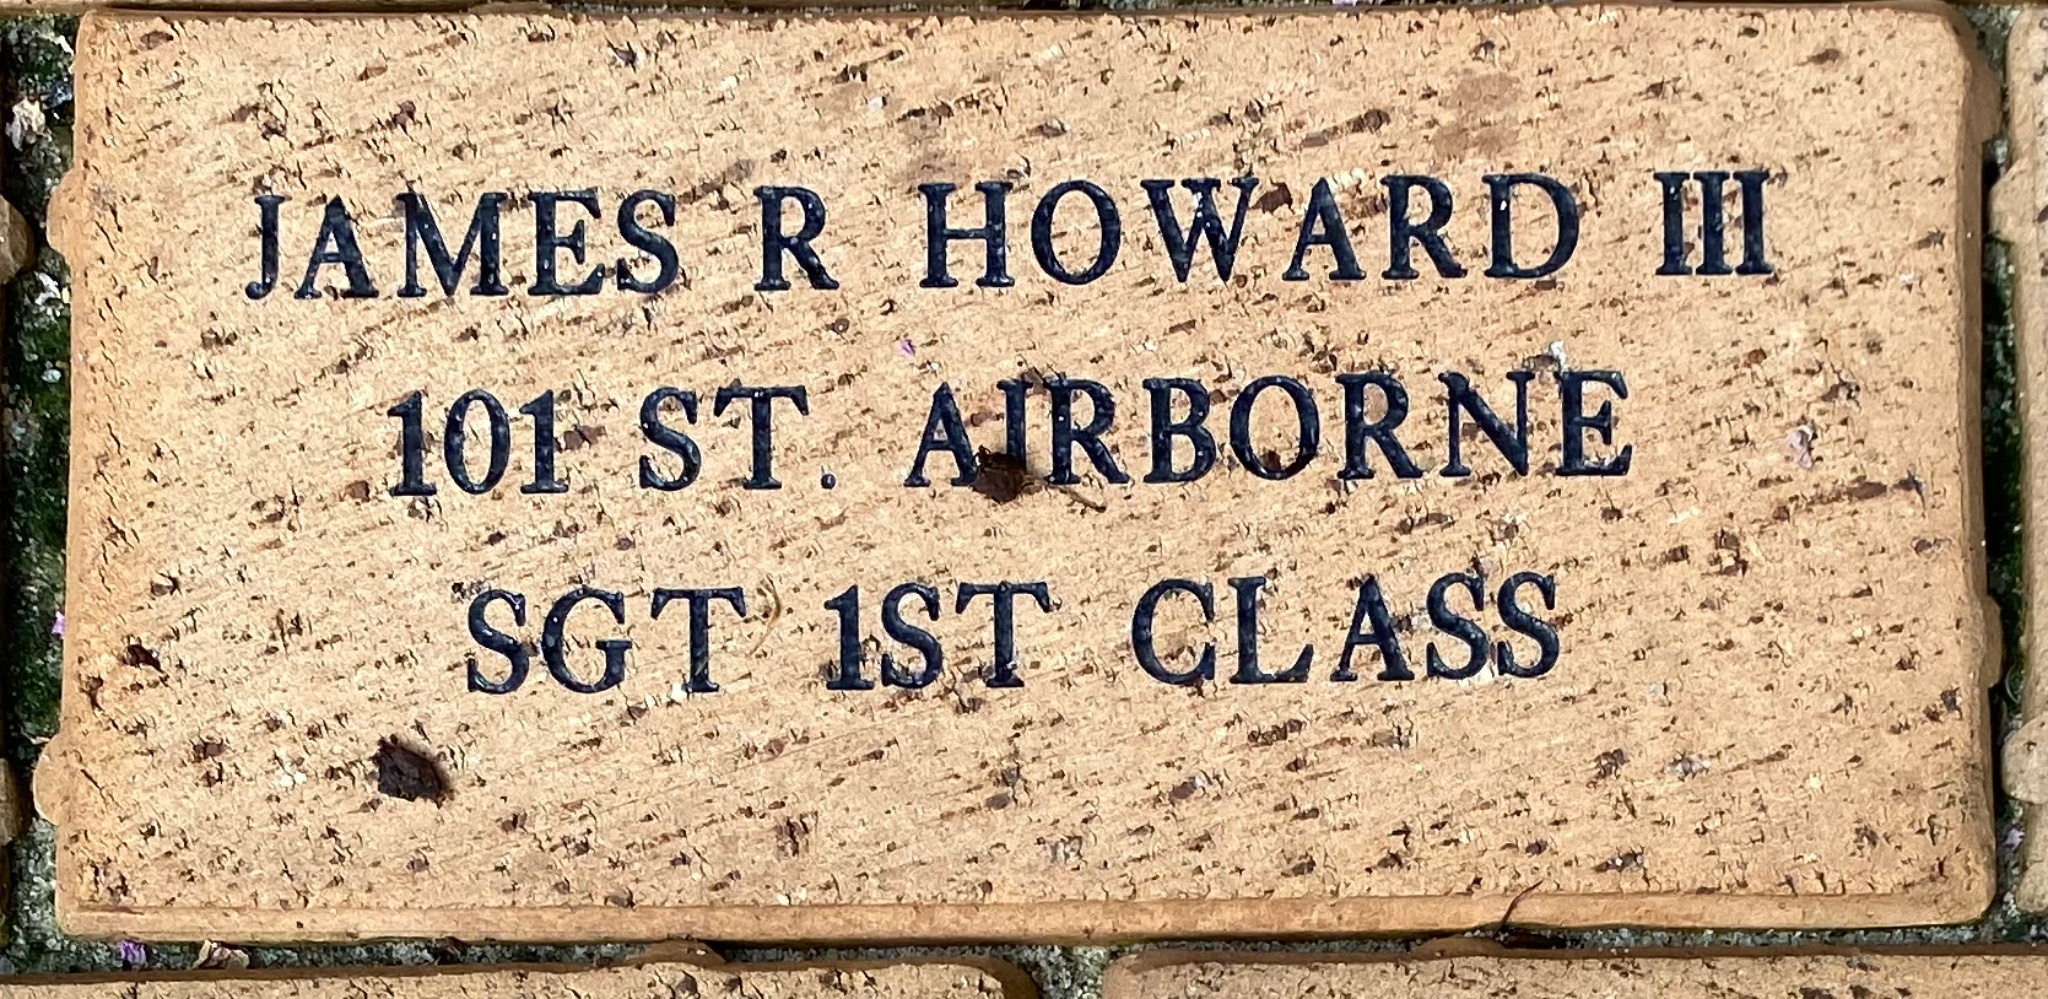 JAMES R. HOWARD III 101 ST. AIRBORNE SGT 1ST CLASS